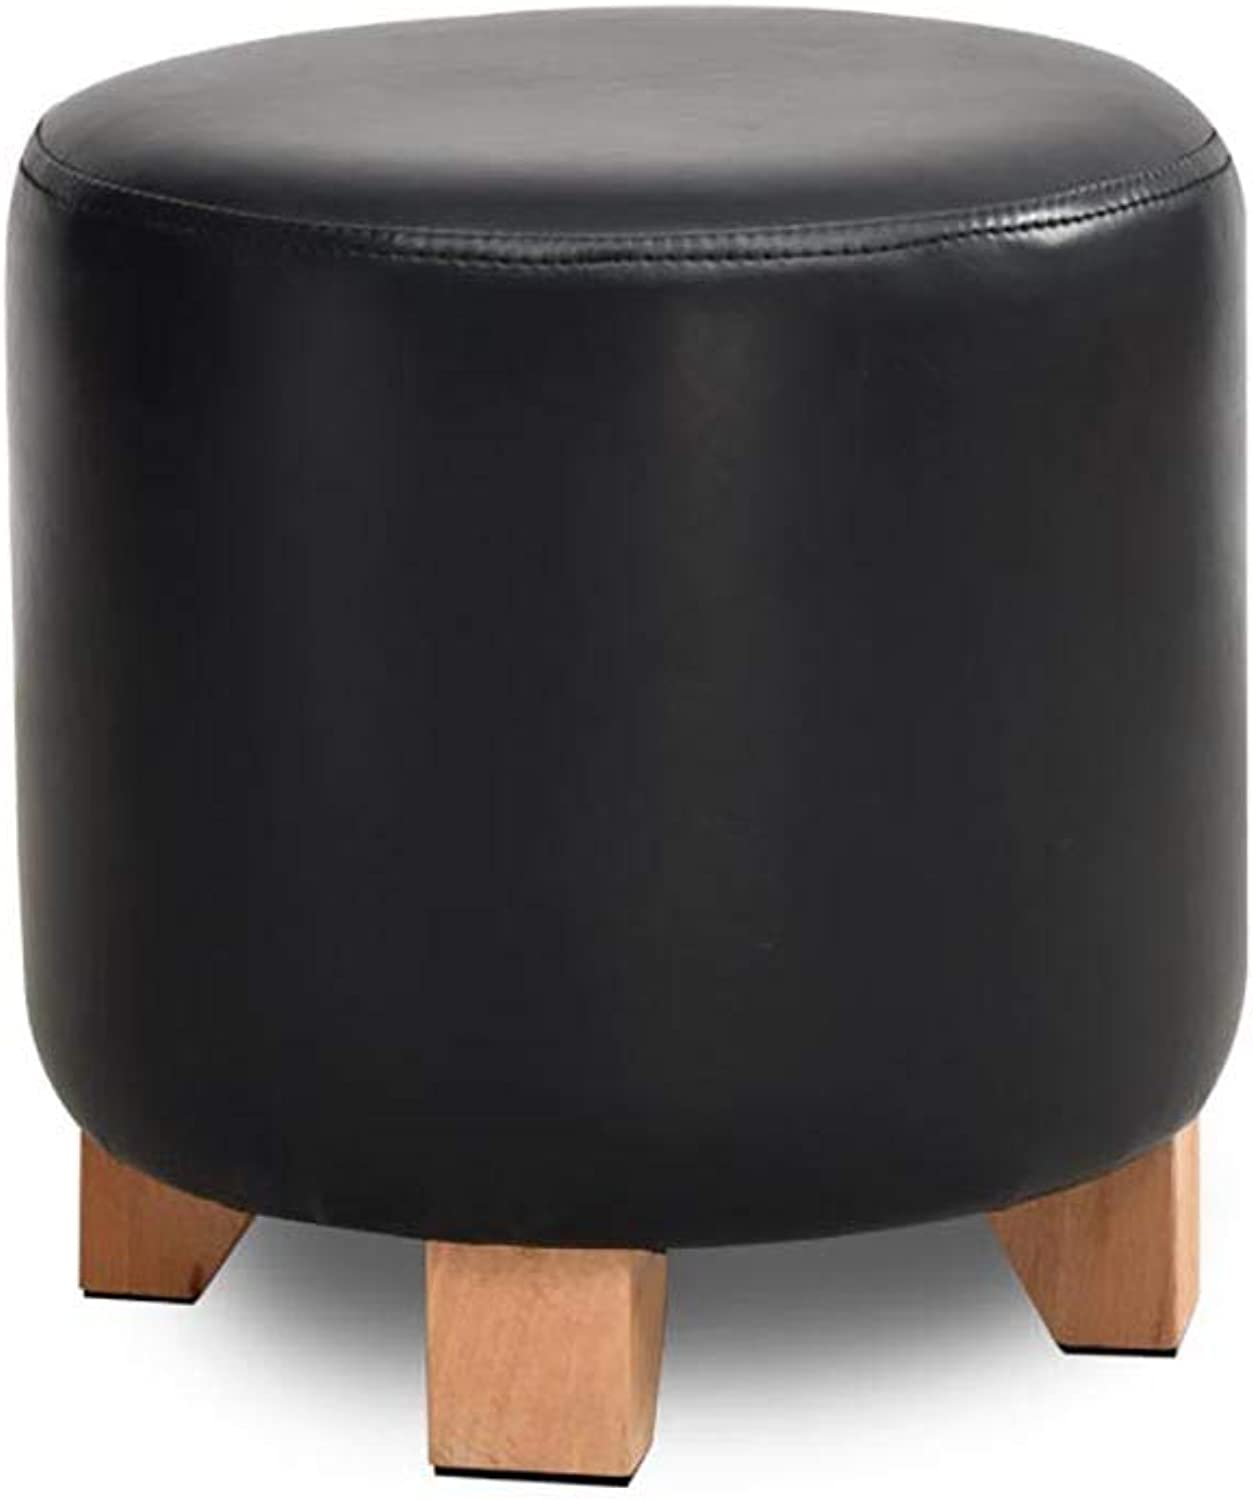 Solid Wood Leather Stool Footstool   shoes Bench Sofa Stool Breathable Easy to Clean wear Non-Slip Weight Bearing Strong (color   Black, Size   29  30cm)